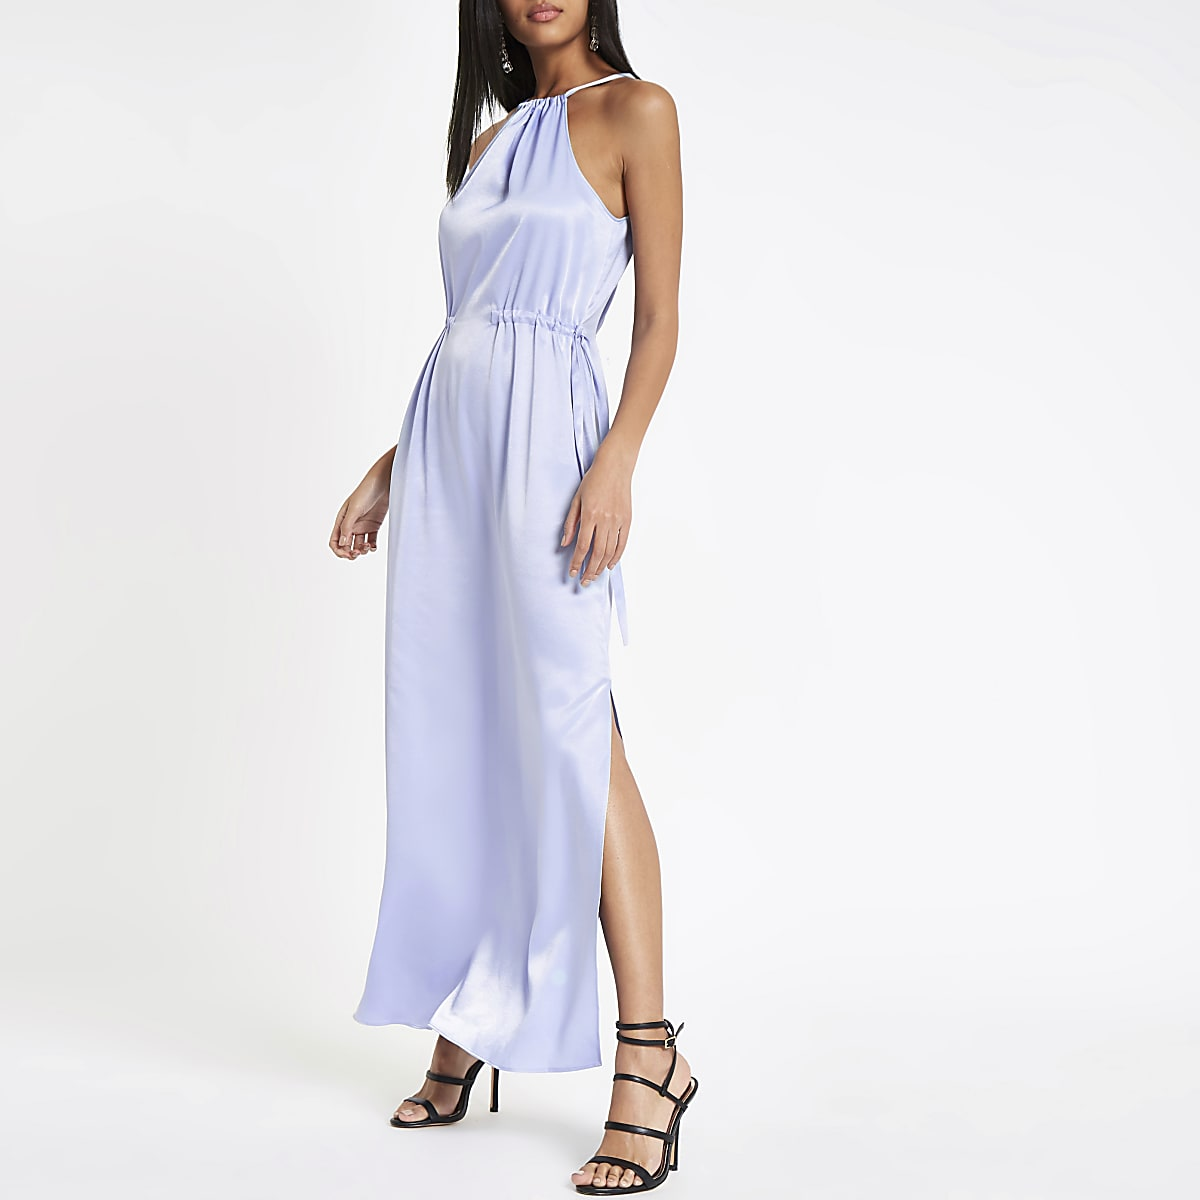 81963e48432 Light blue trapeze maxi dress - Maxi Dresses - Dresses - women